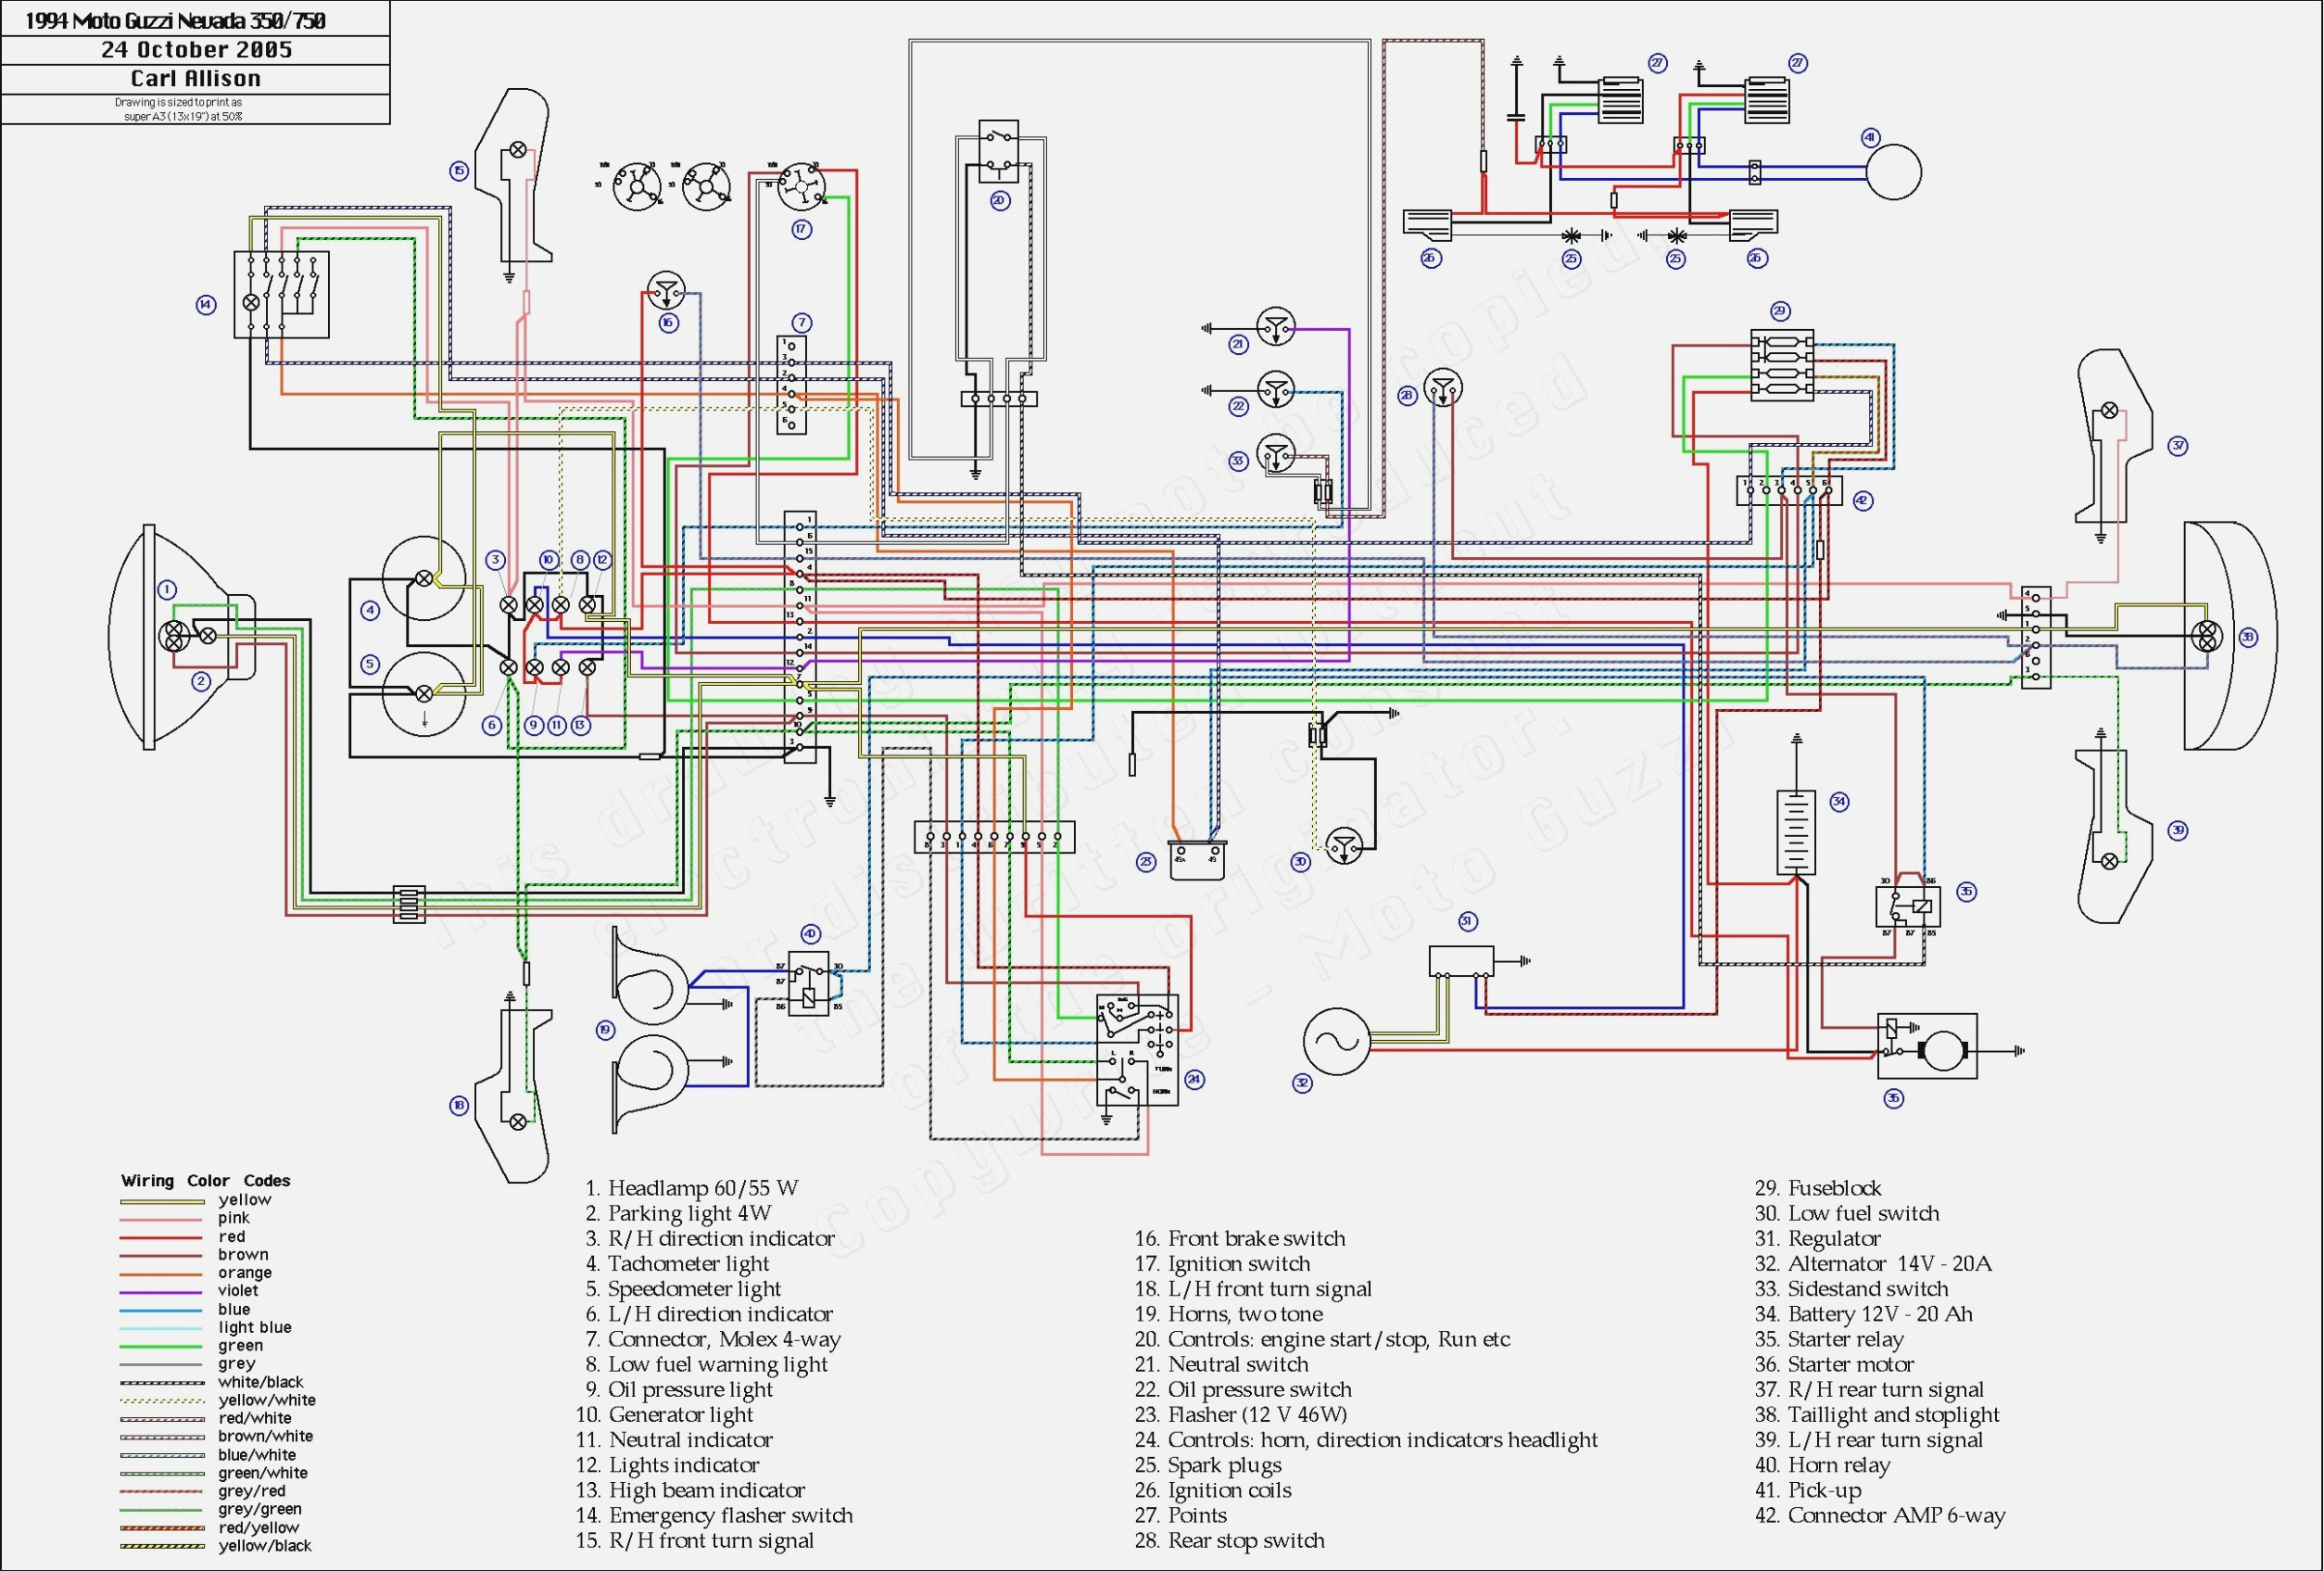 yamaha outboard ignition switch wiring diagram elegant 15 warrior yamaha outboard model code chart